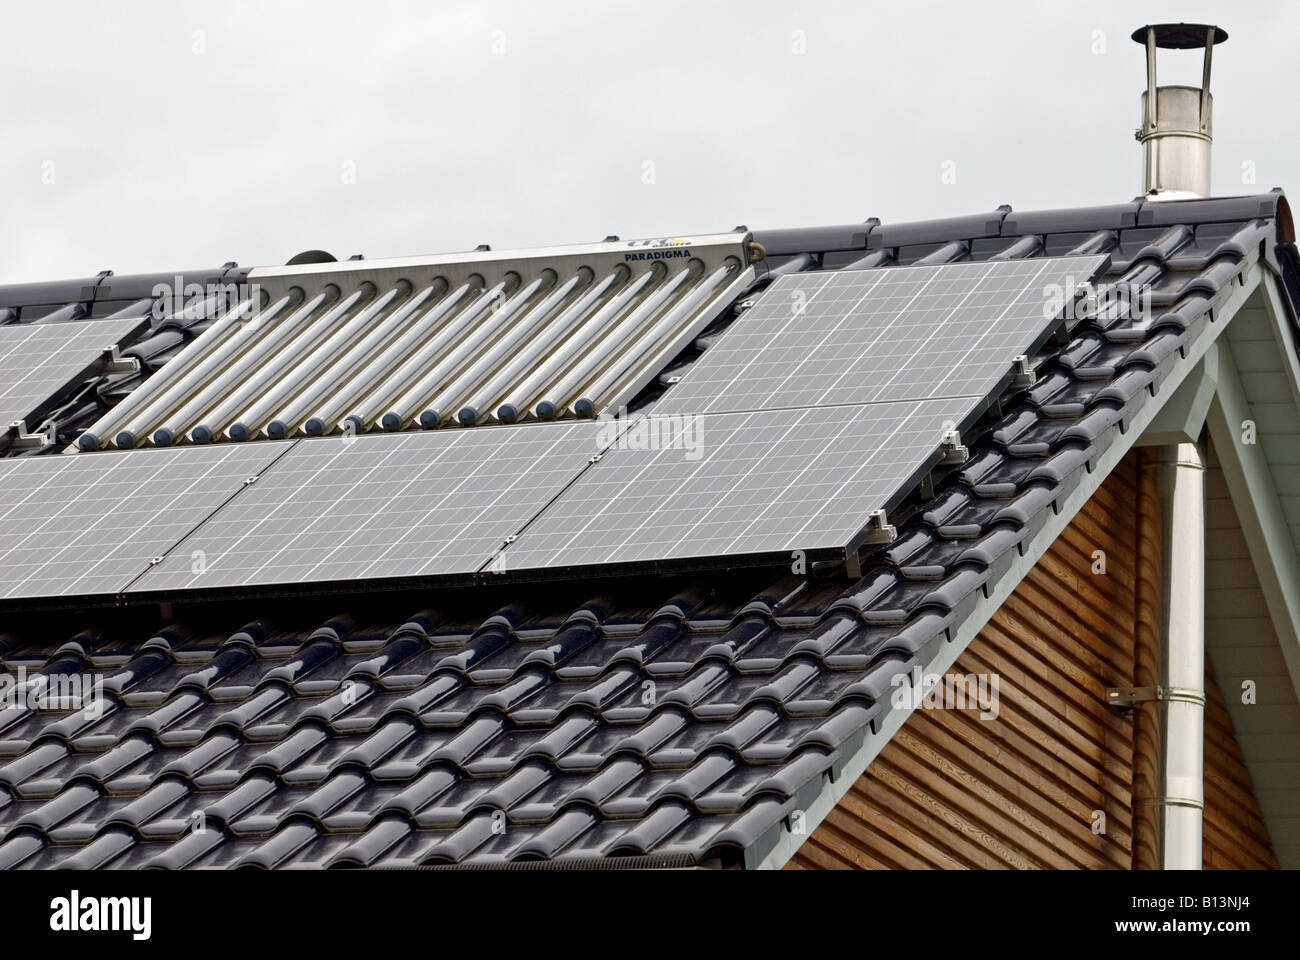 Newly built house with solar panels fitted to the roof, Bocklemund, Cologne, Germany. - Stock Image